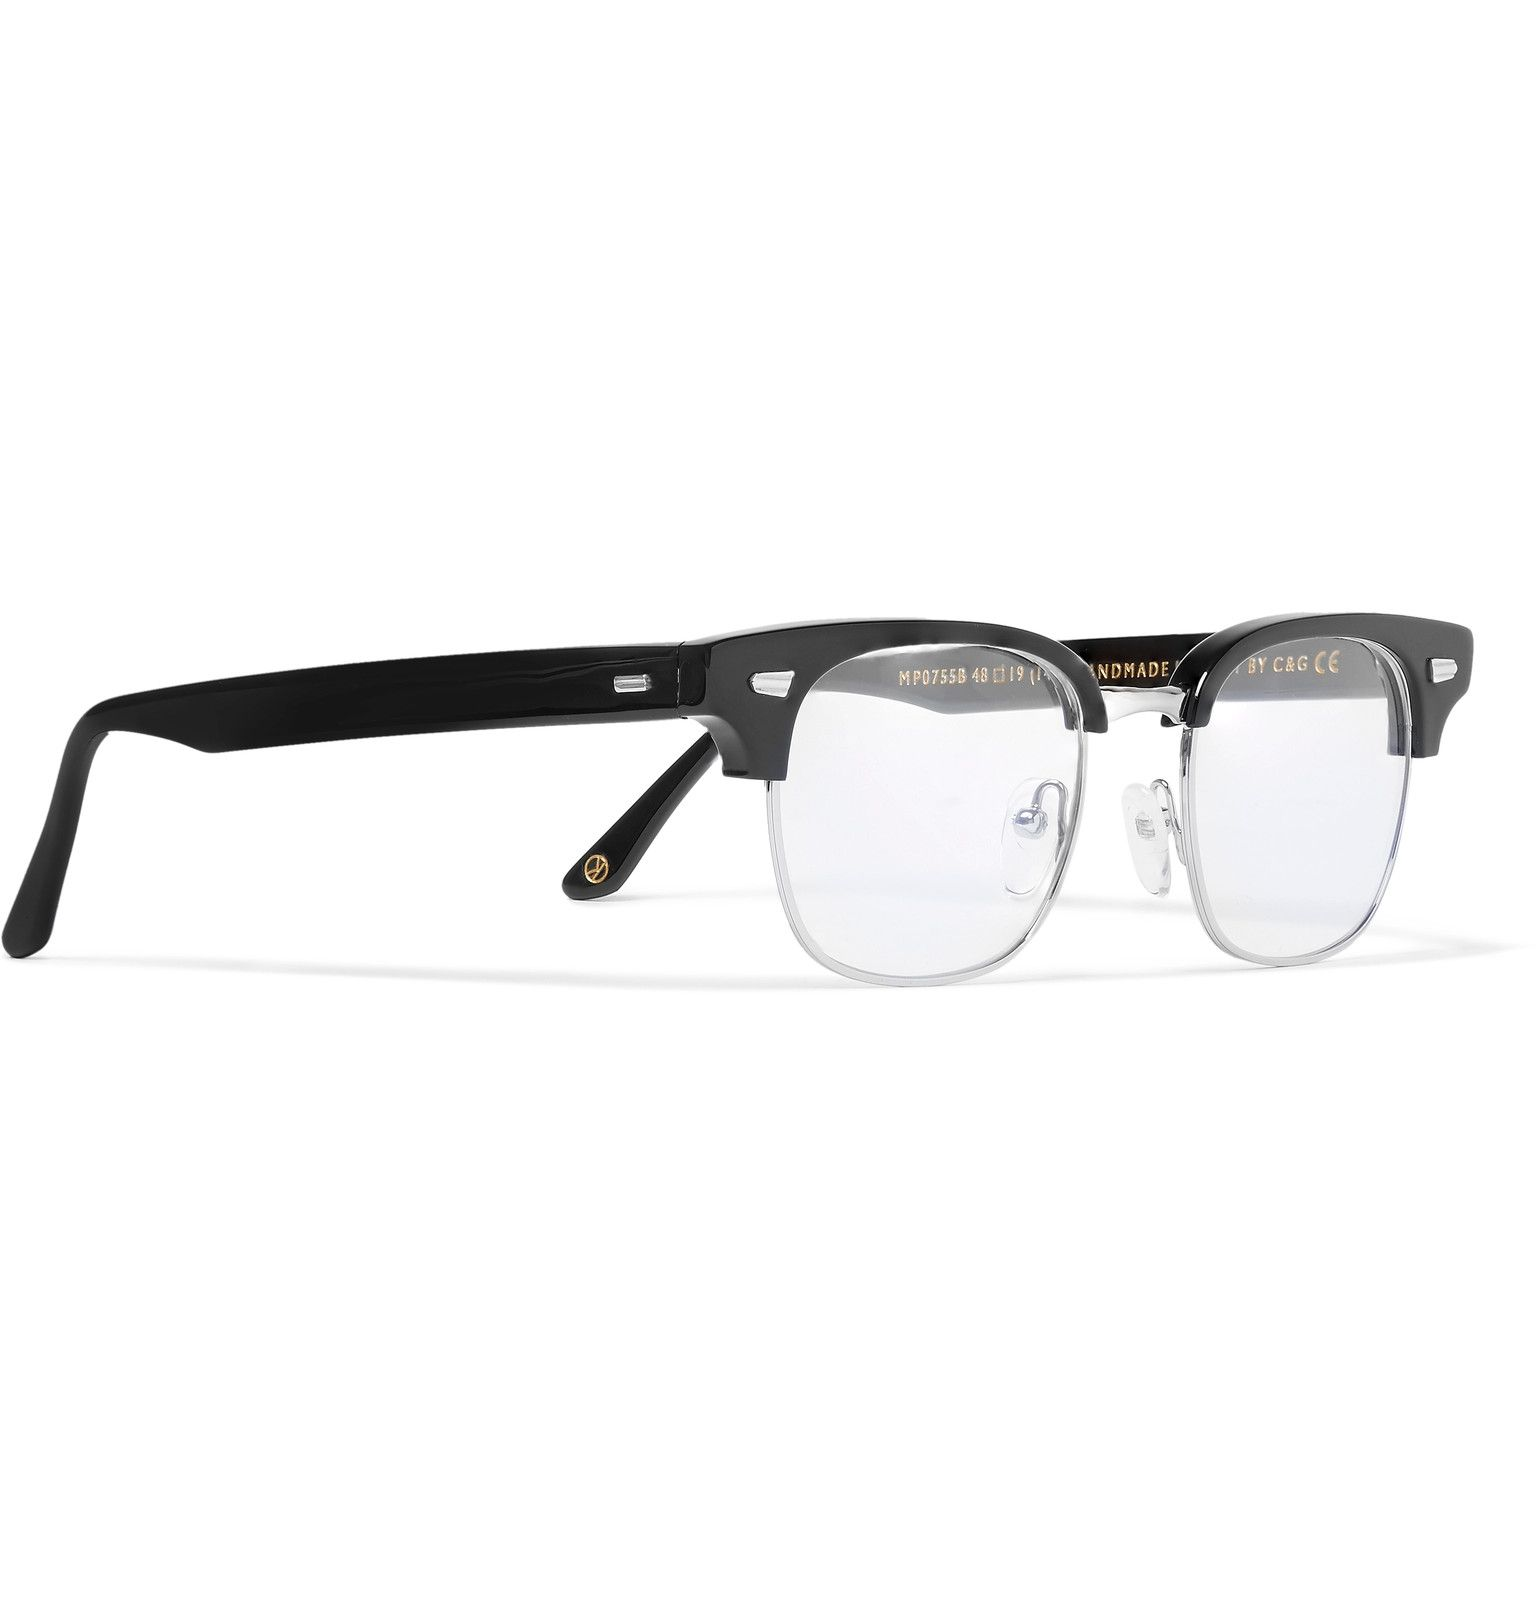 dd26516d4bd Kingsman Cutler And Gross Merlin s Square-Frame Acetate And Silver-Tone Optical  Glasses